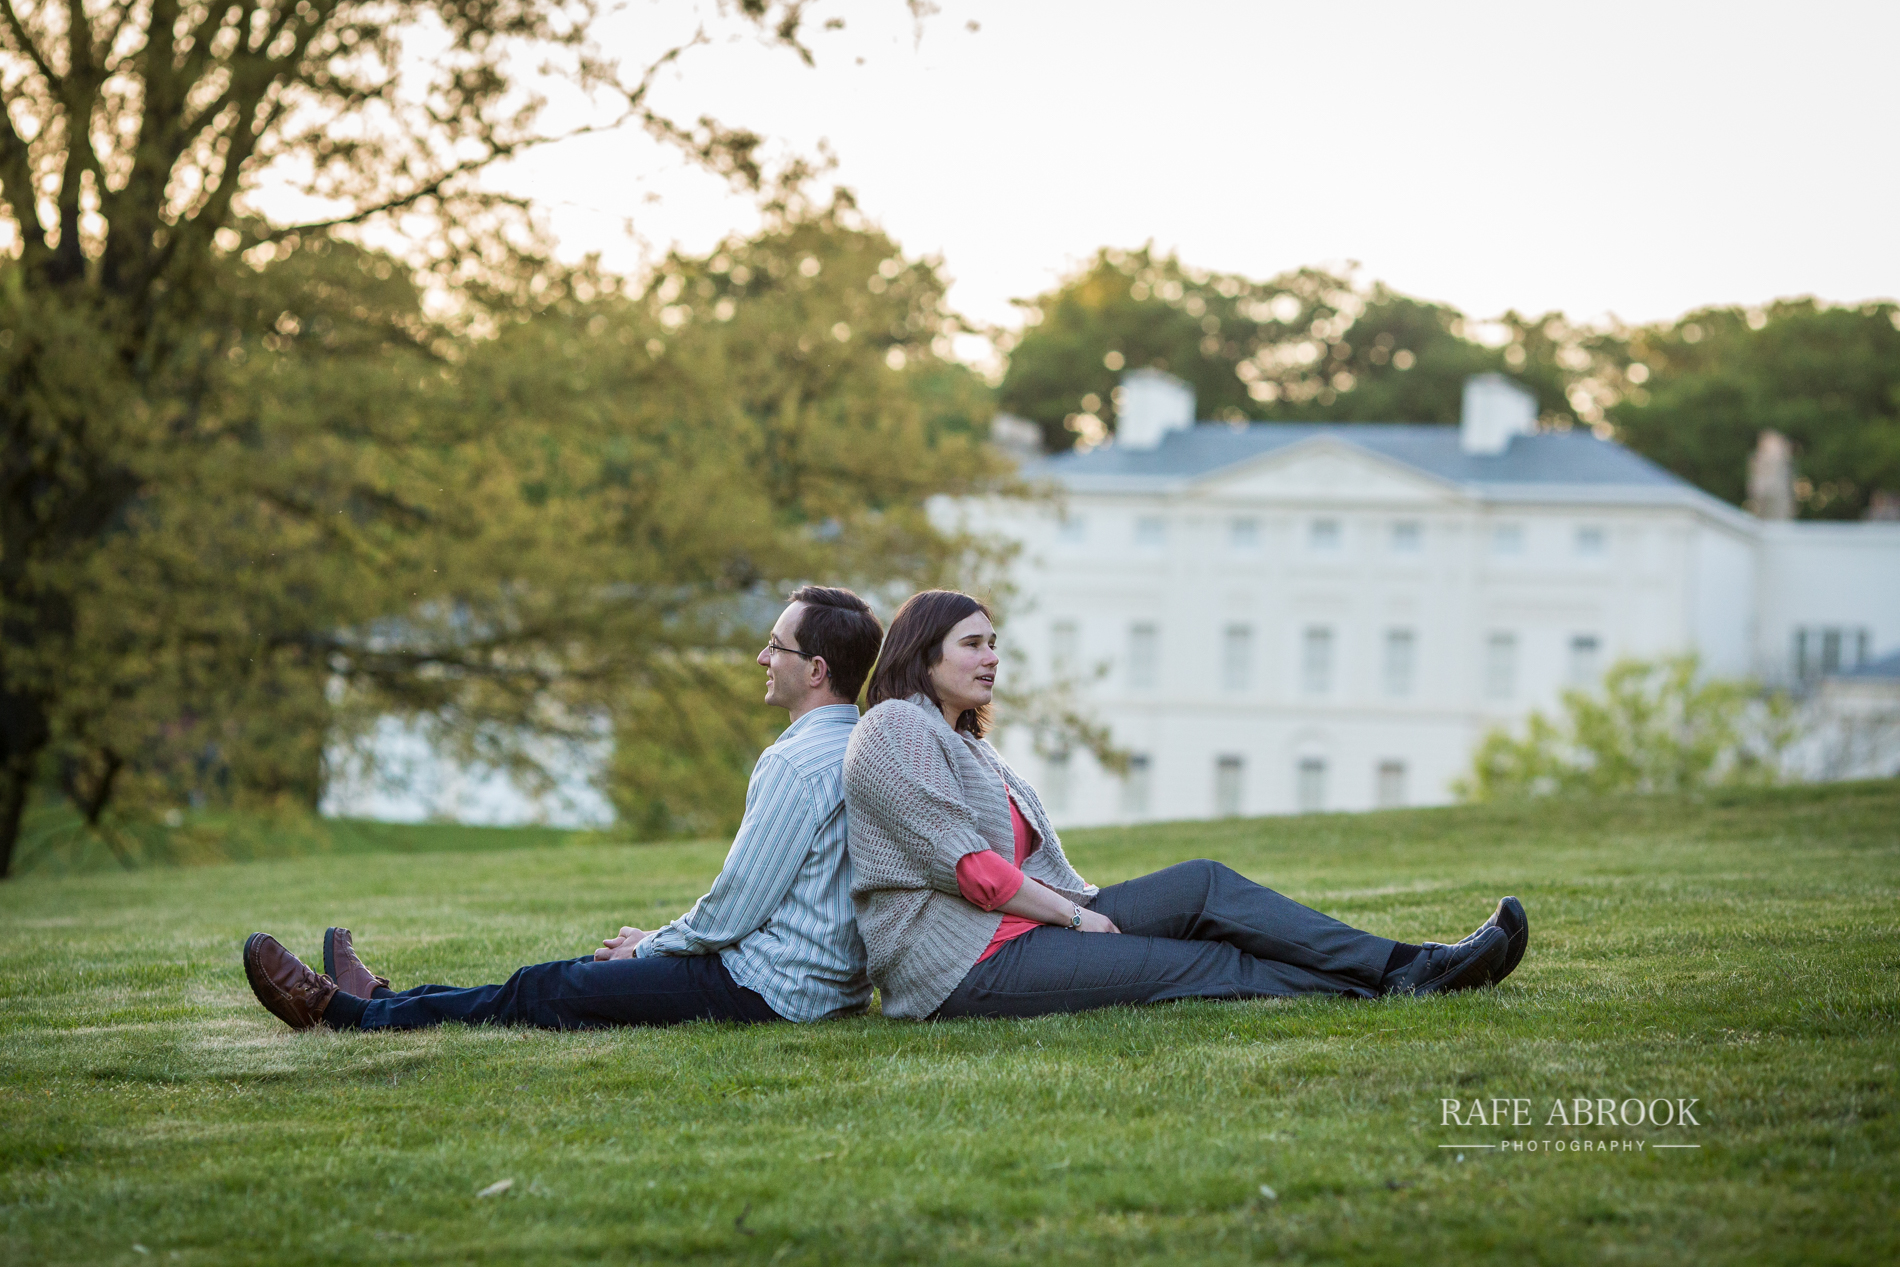 david & hannah engagement shoot hampstead heath london-2020.jpg